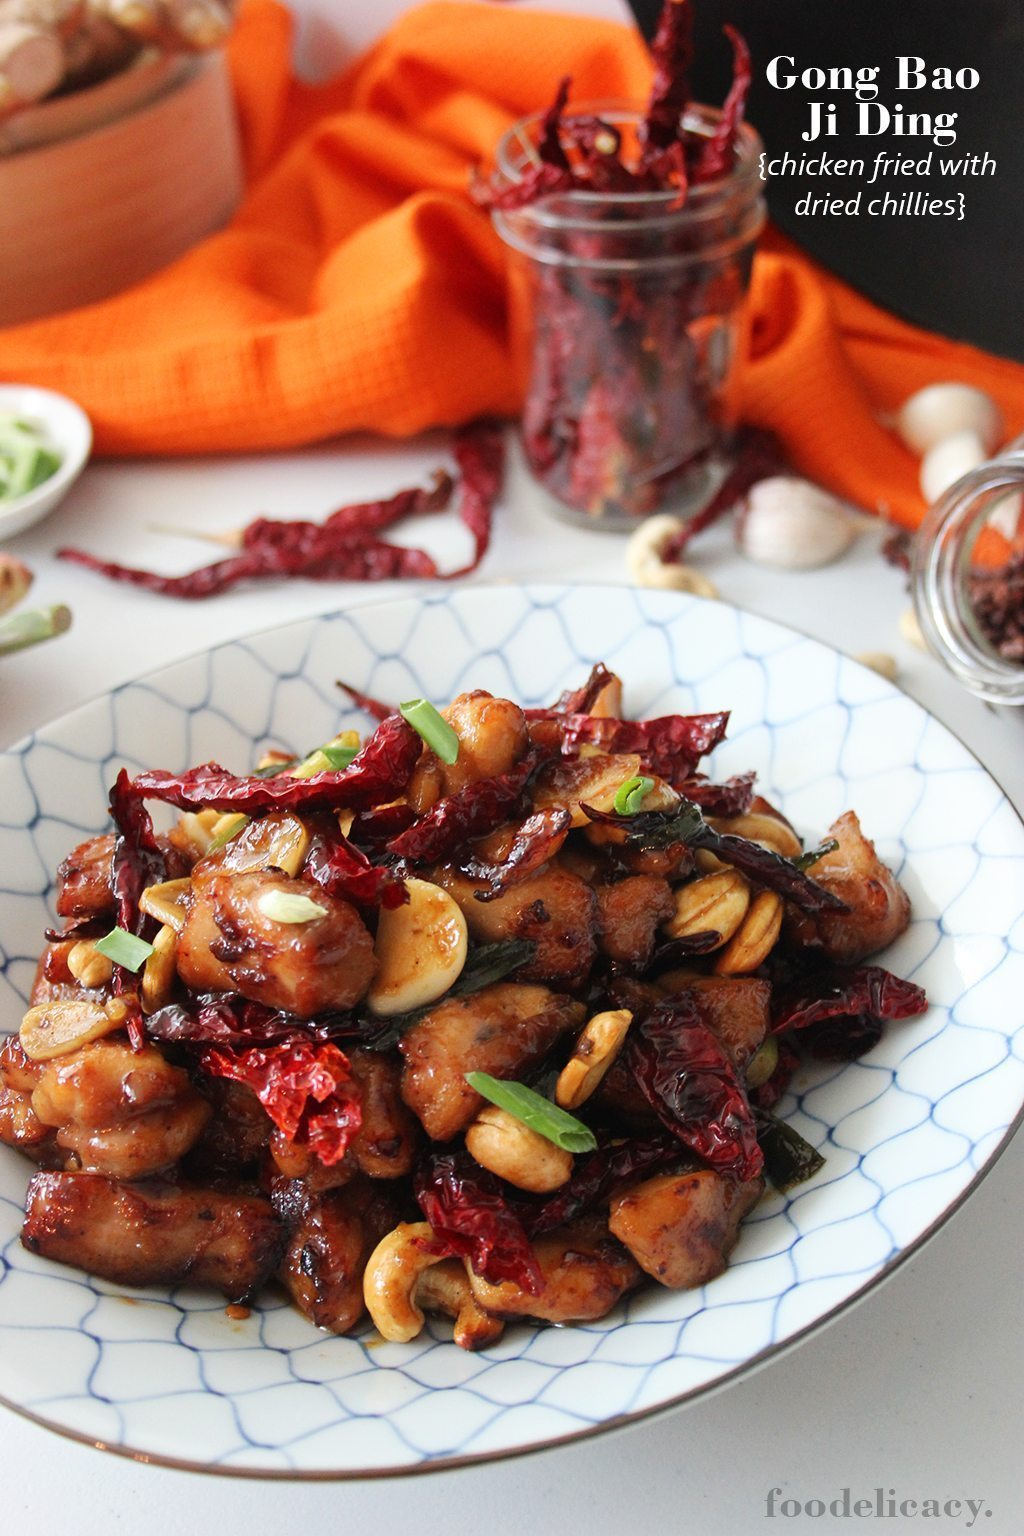 Kung_Pao_Chicken_Title_3B